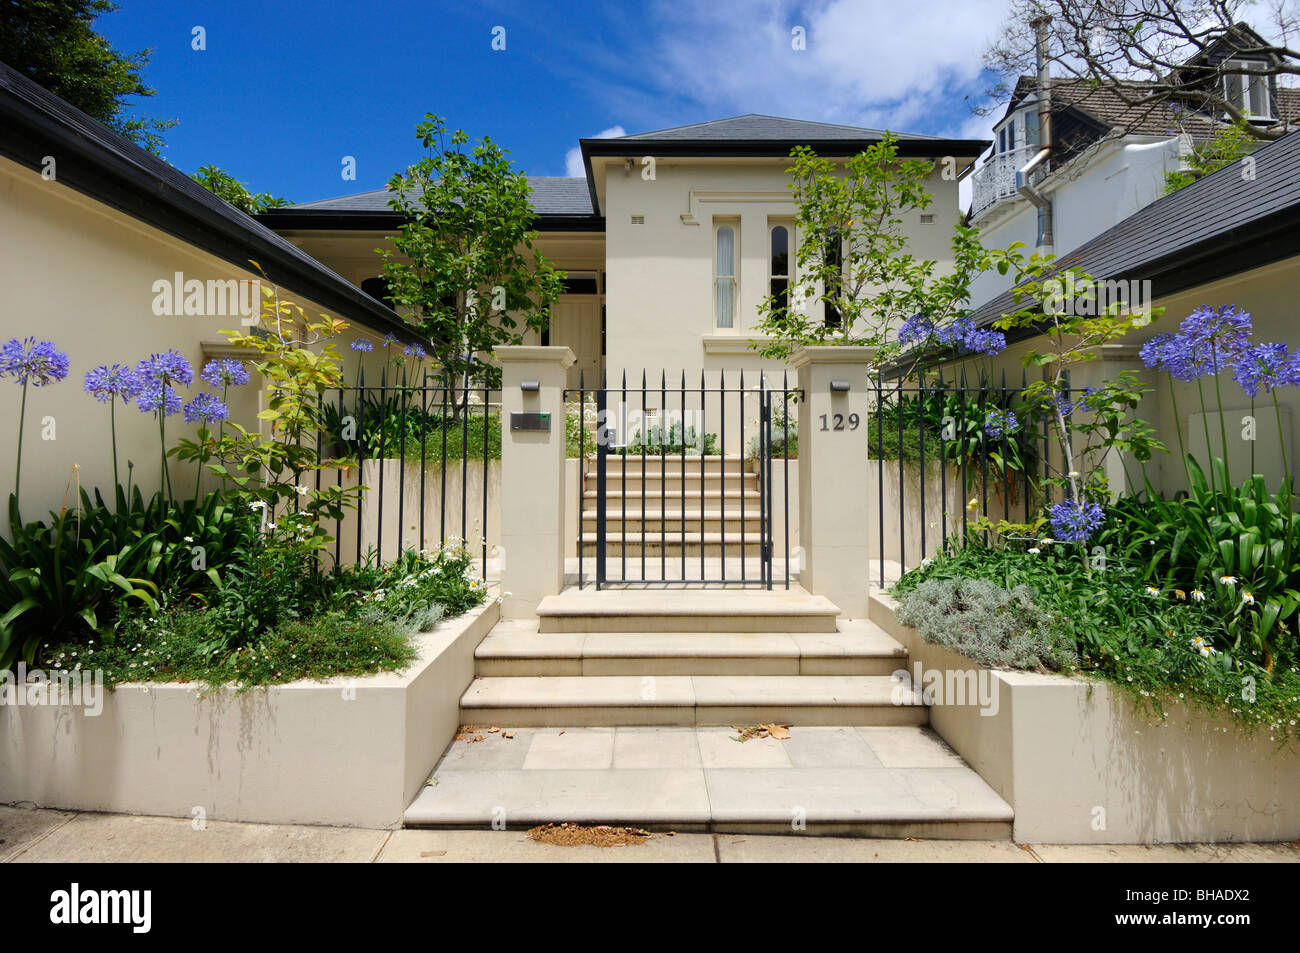 Winning The Formal Front Courtyard Garden With Steps And Gate Of A House  With Entrancing Stock Photo  The Formal Front Courtyard Garden With Steps And Gate Of A  House In A Sydney Australia Editorial Use Only With Nice Hyde Park Gardens Also Garden Affairs In Addition Image Garden And School Garden Resources As Well As First Time Gardener Additionally Ming Garden From Alamycom With   Nice The Formal Front Courtyard Garden With Steps And Gate Of A House  With Winning School Garden Resources As Well As First Time Gardener Additionally Ming Garden And Entrancing Stock Photo  The Formal Front Courtyard Garden With Steps And Gate Of A  House In A Sydney Australia Editorial Use Only Via Alamycom